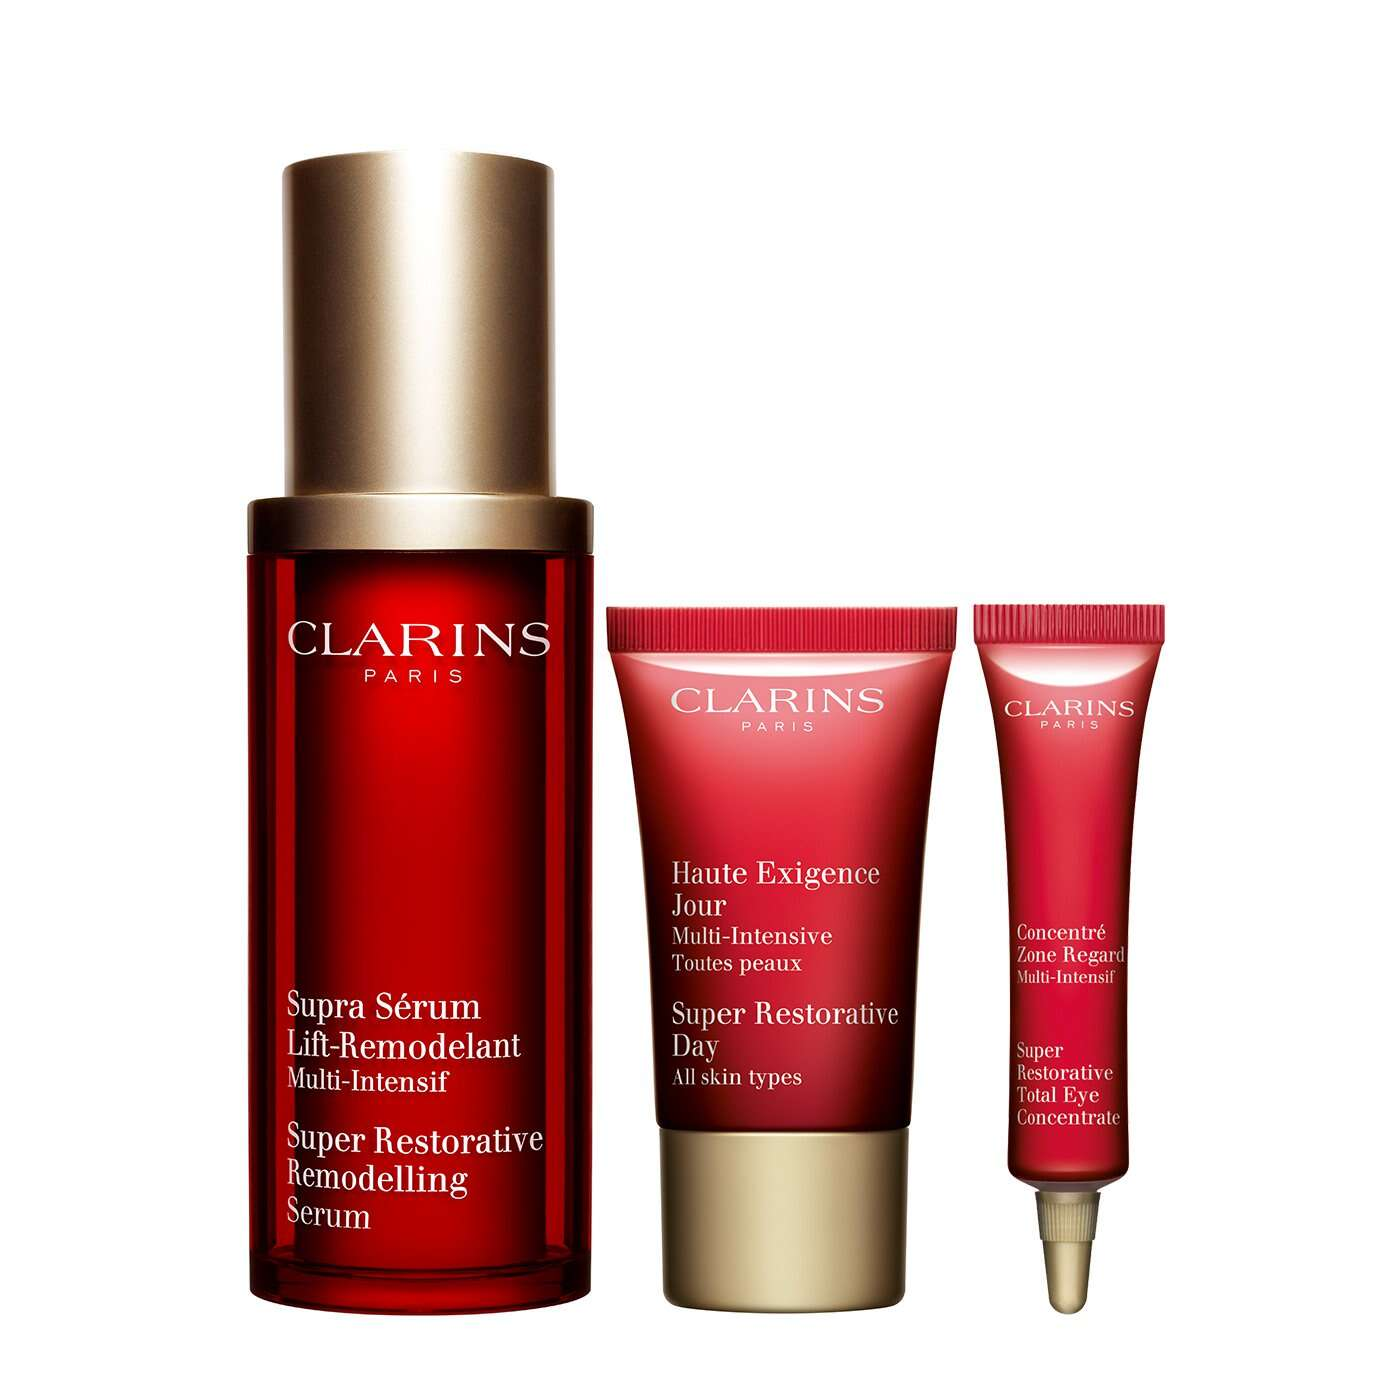 Super Restorative Age-Defying Trio ($214 Value)